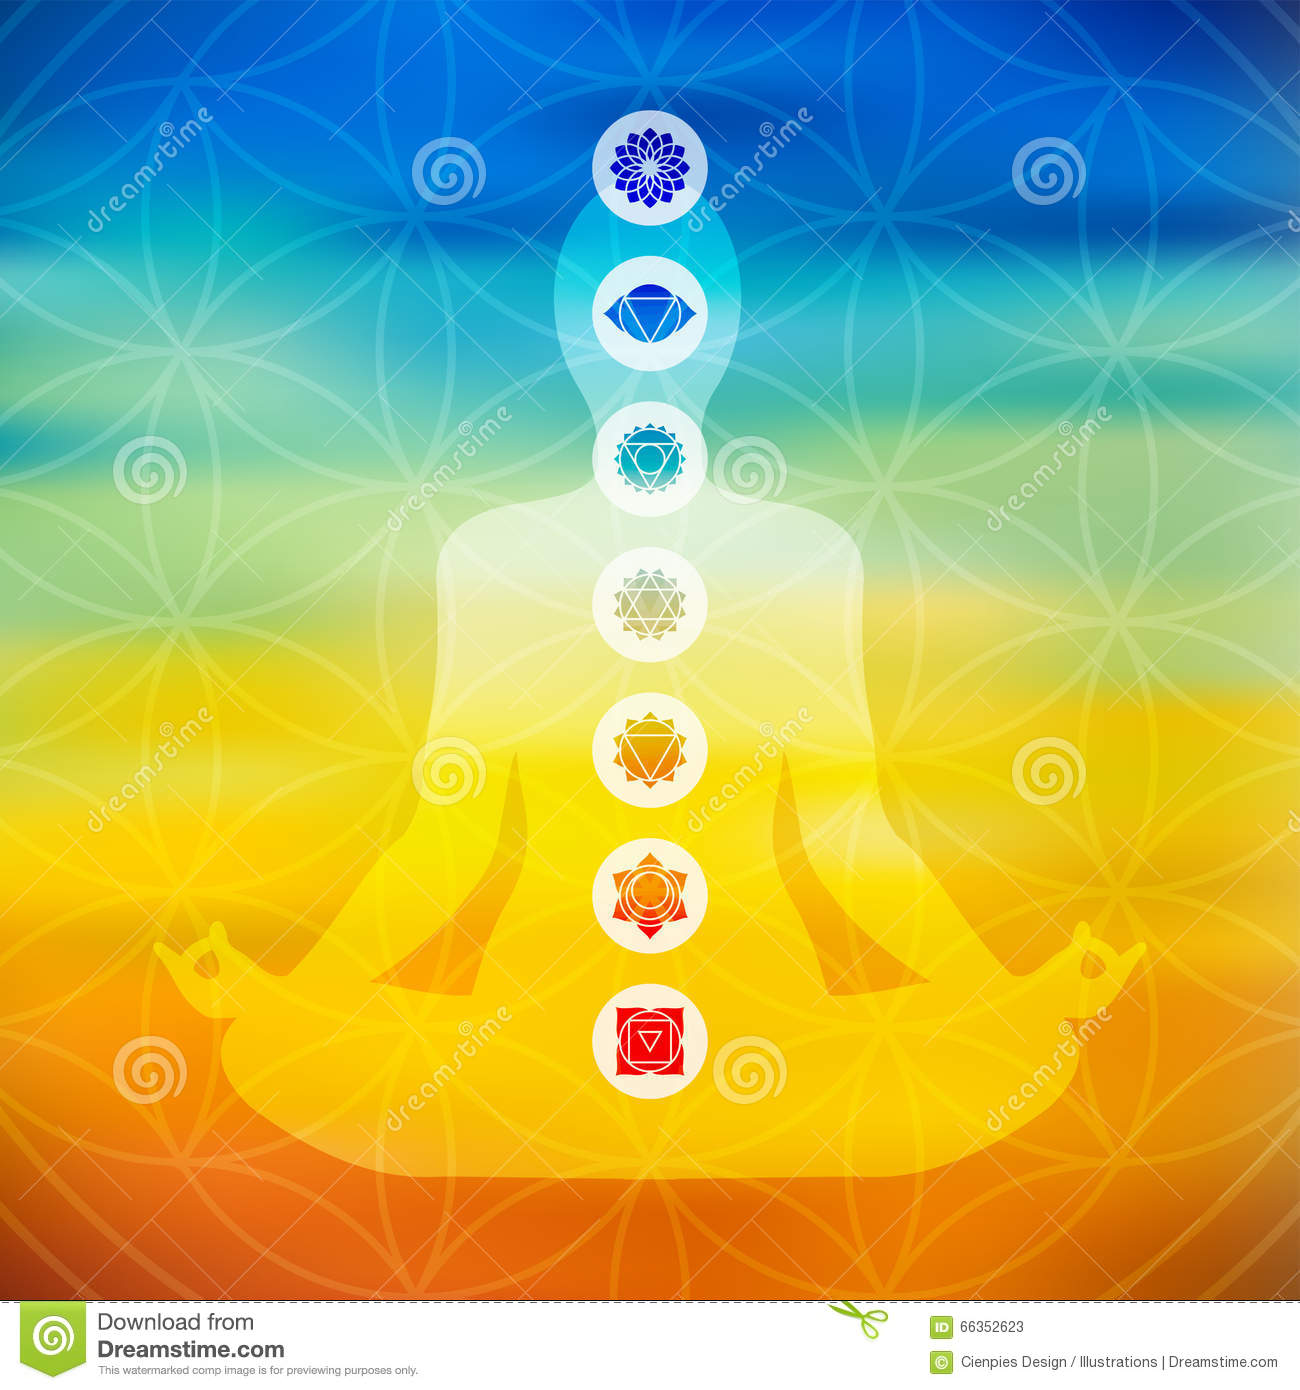 Yoga Pose With Chakra Icons Stock Vector Illustration Of Element